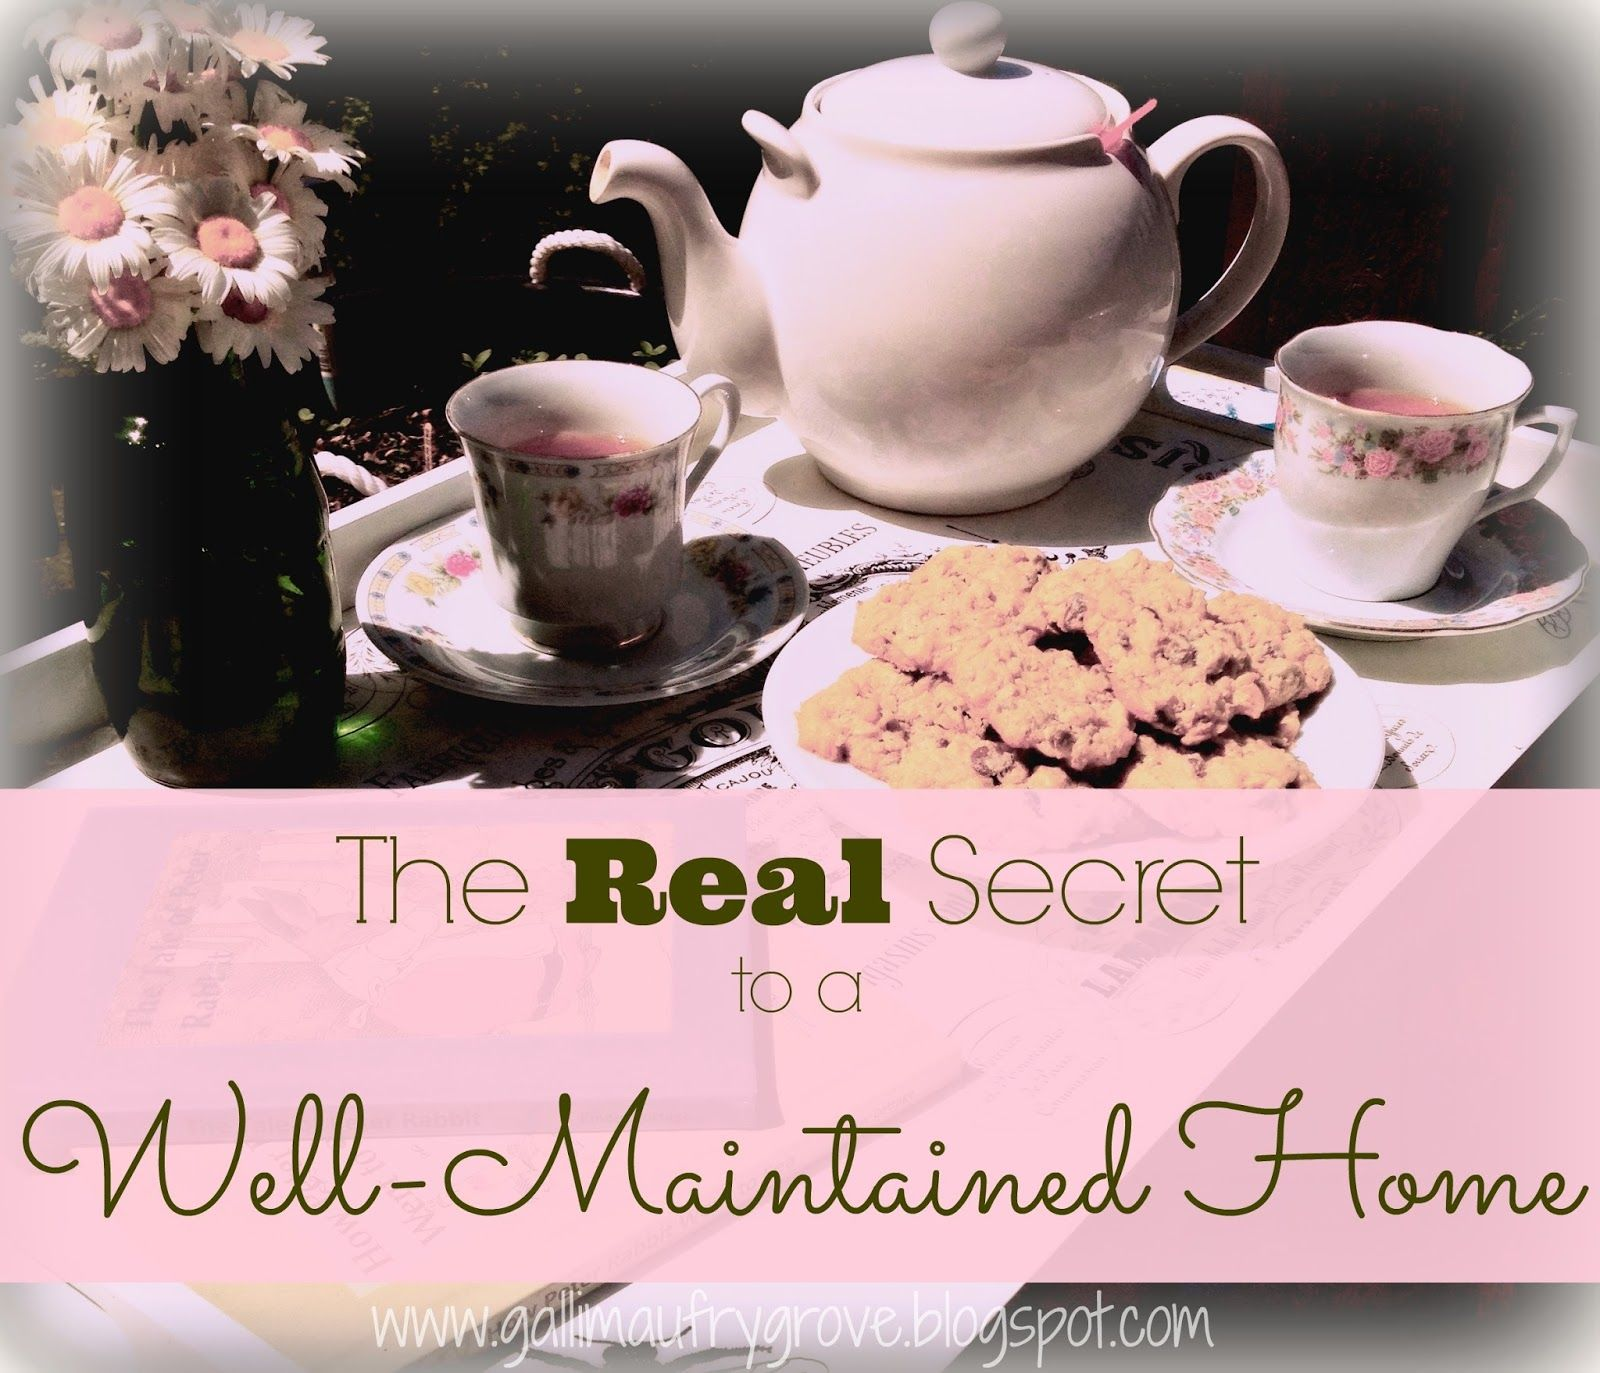 No, it's not getting up earlier when you're already going to bed at 2. // Gallimaufry Grove: The Real Secret to a Well-Maintained Home